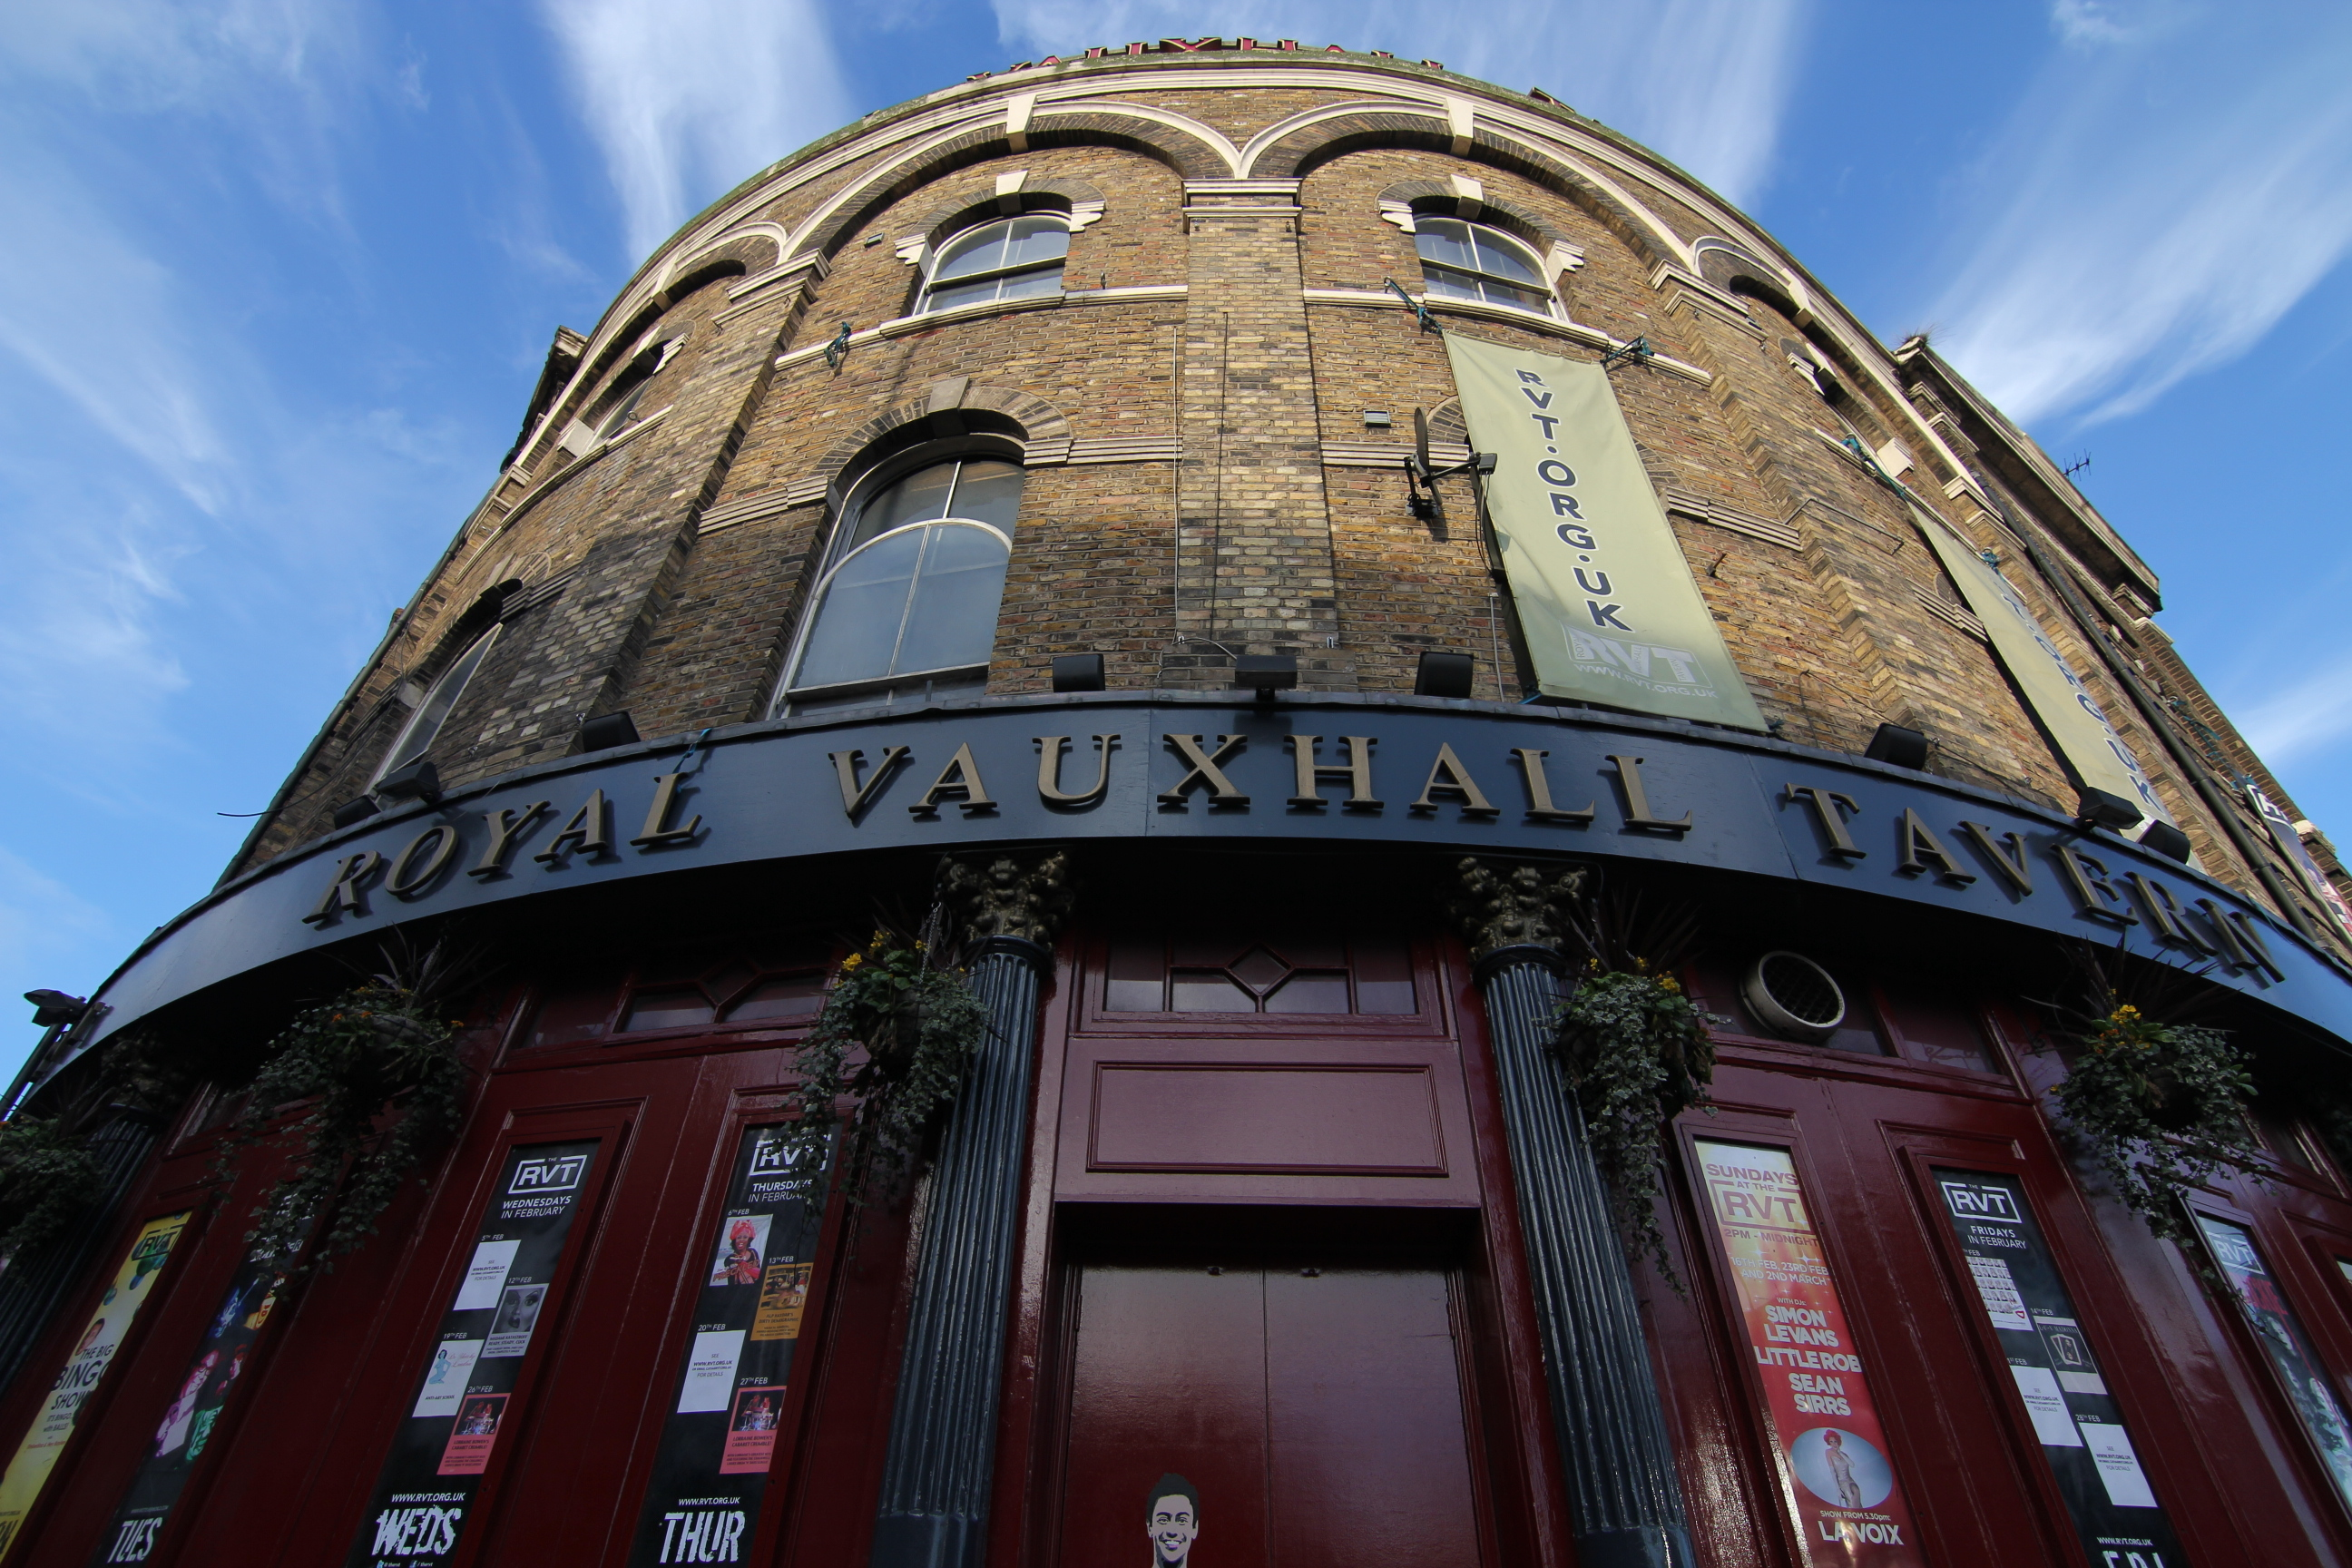 The Royal Vauxhall Tavern needs your help!